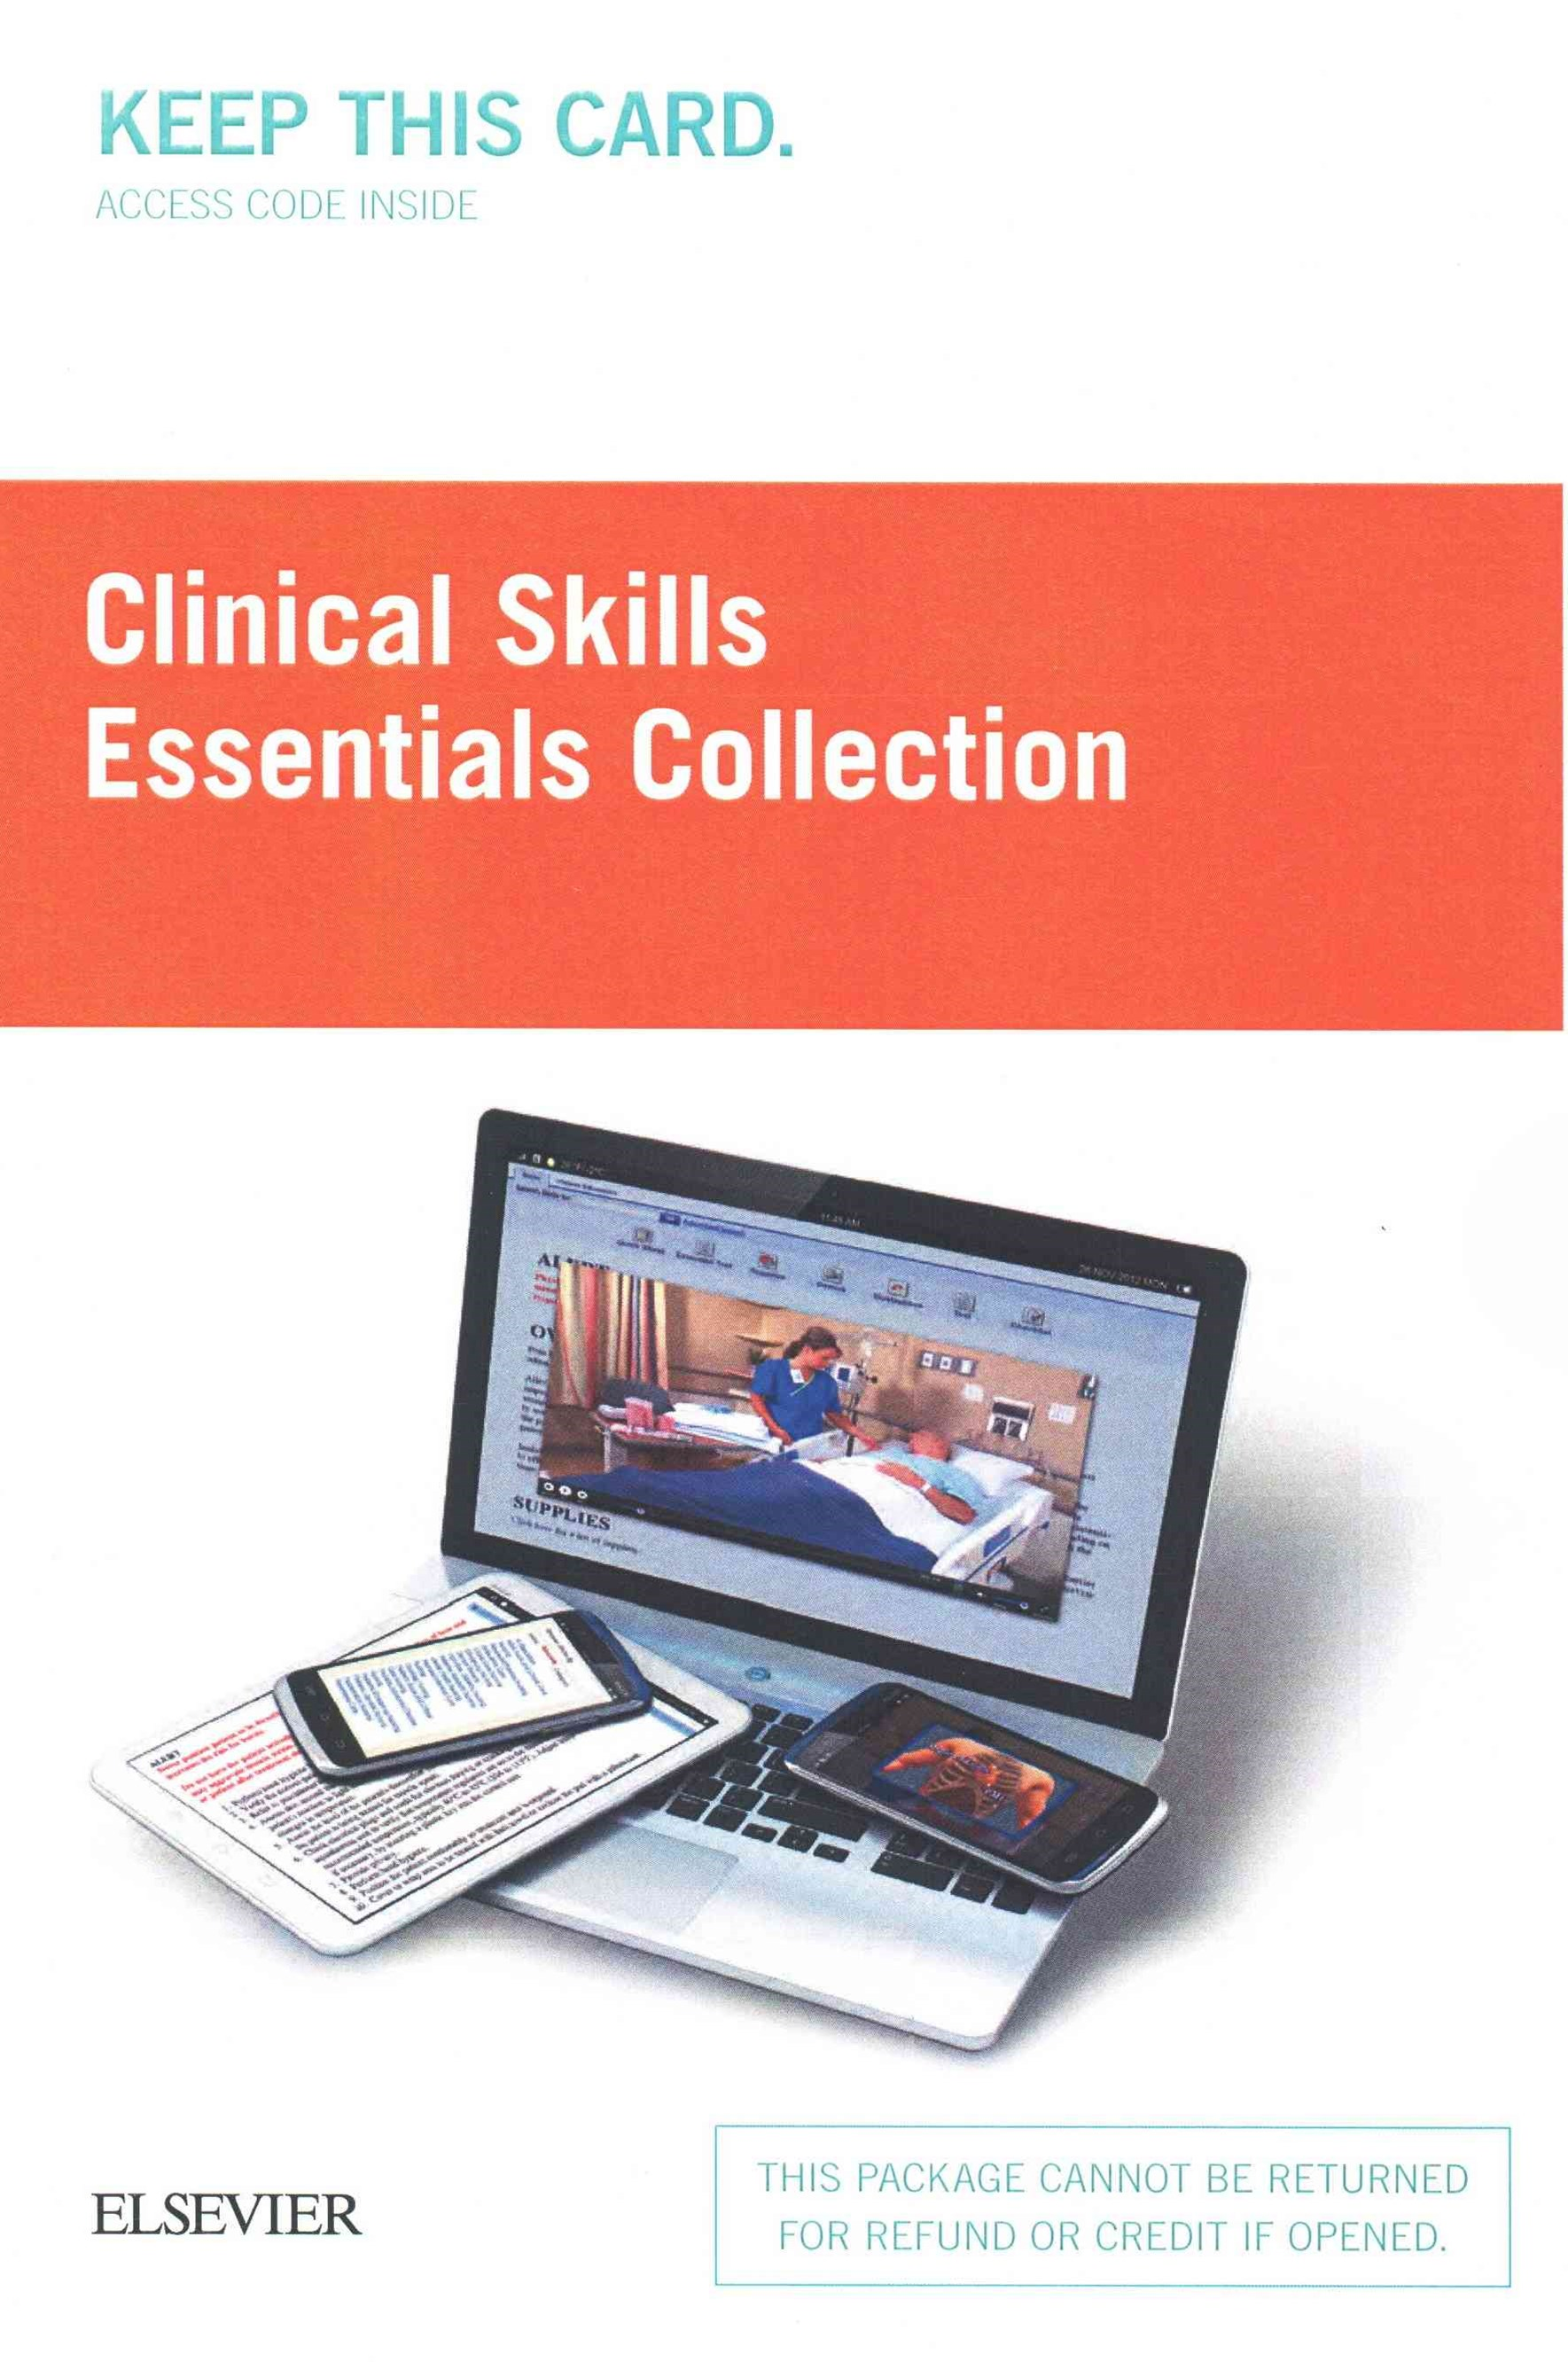 Clinical Skills Essentials Collection Access Code